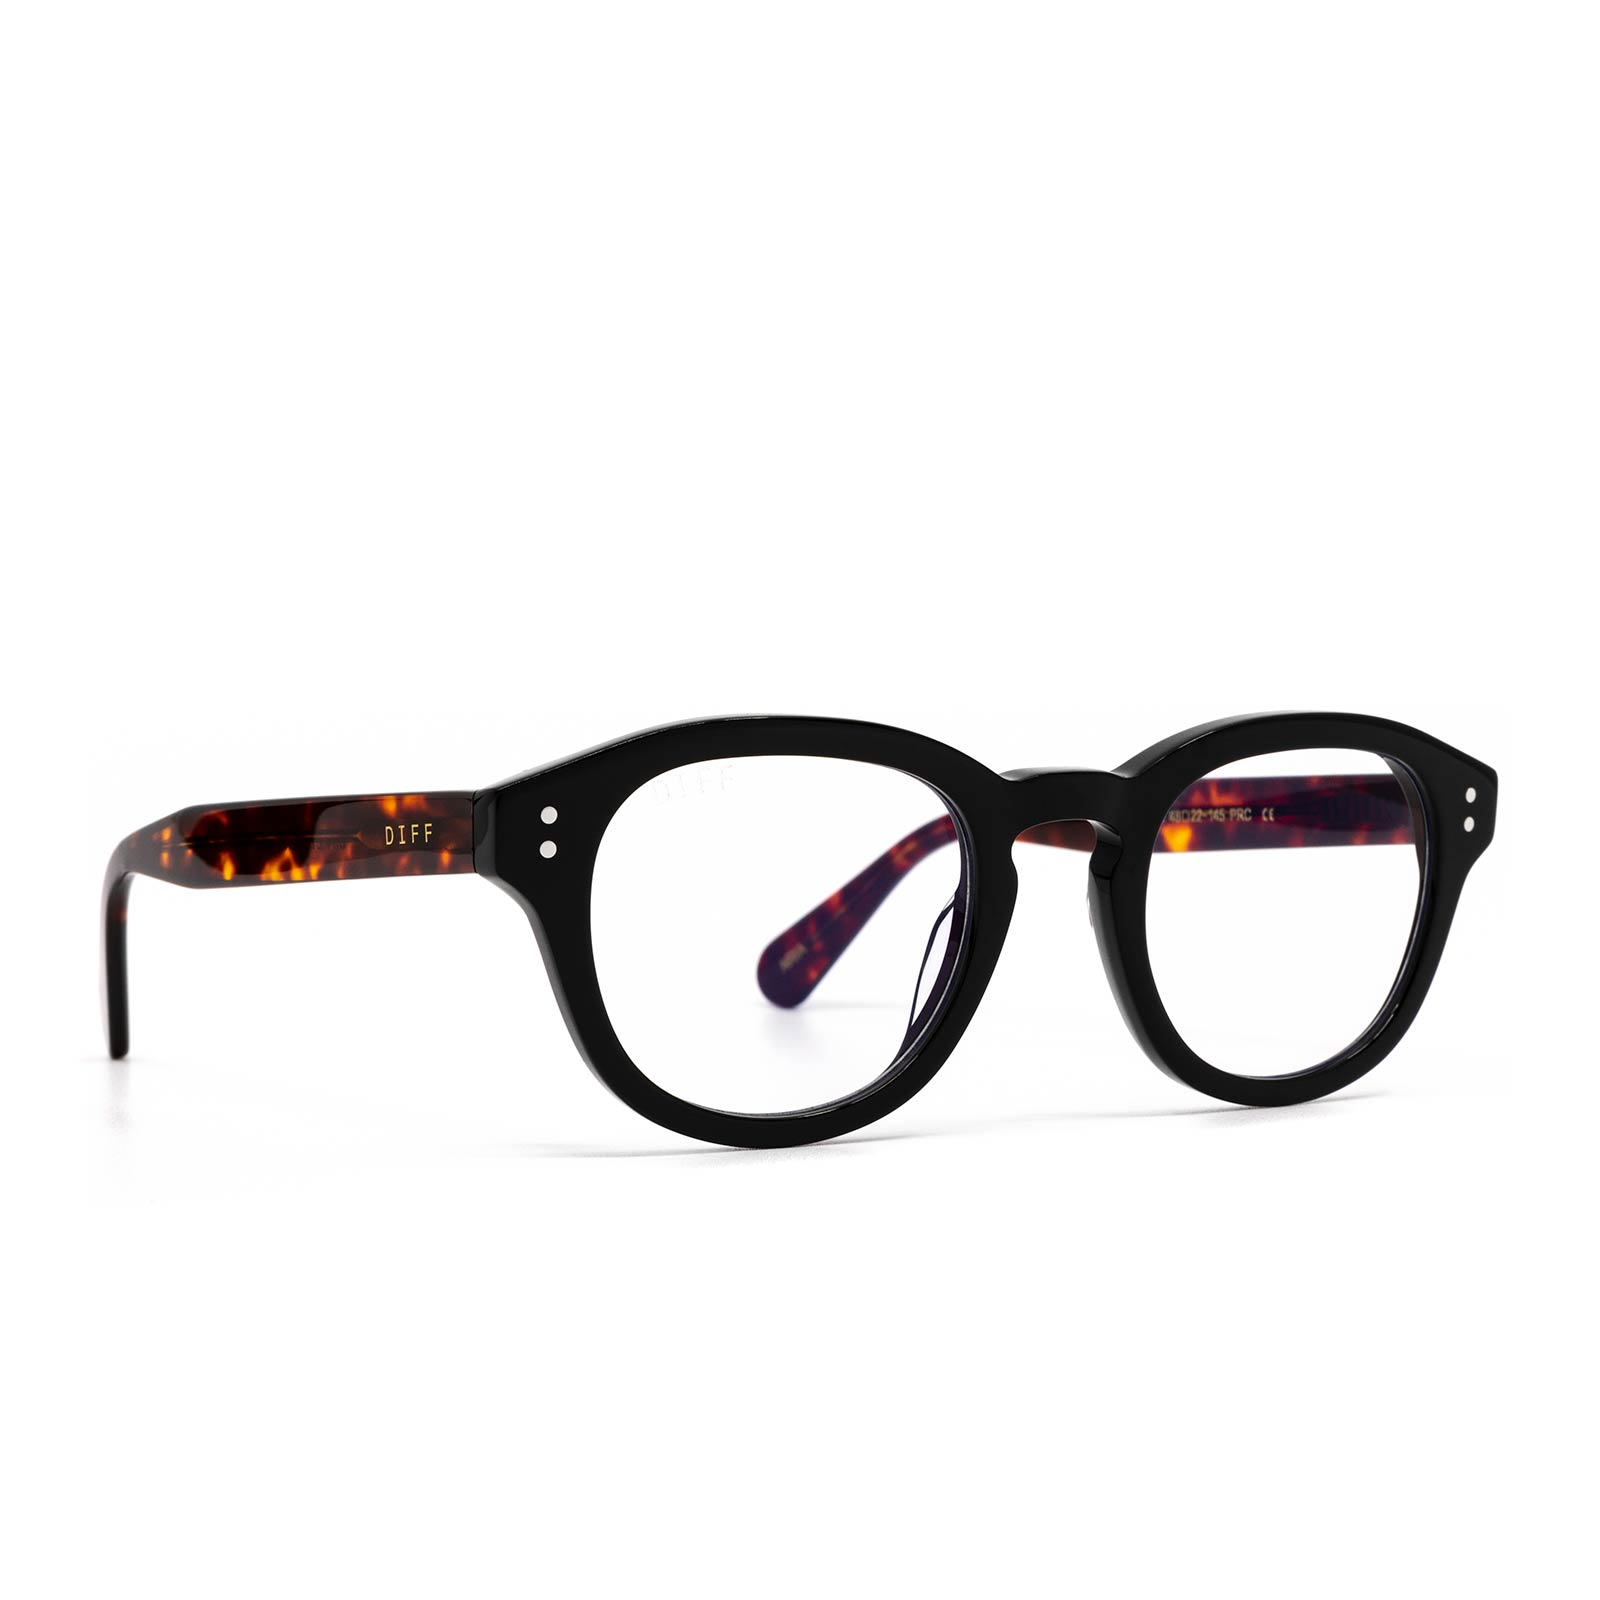 Aria eyeglasses with black amber tortoise frame and blue light technology - angle view